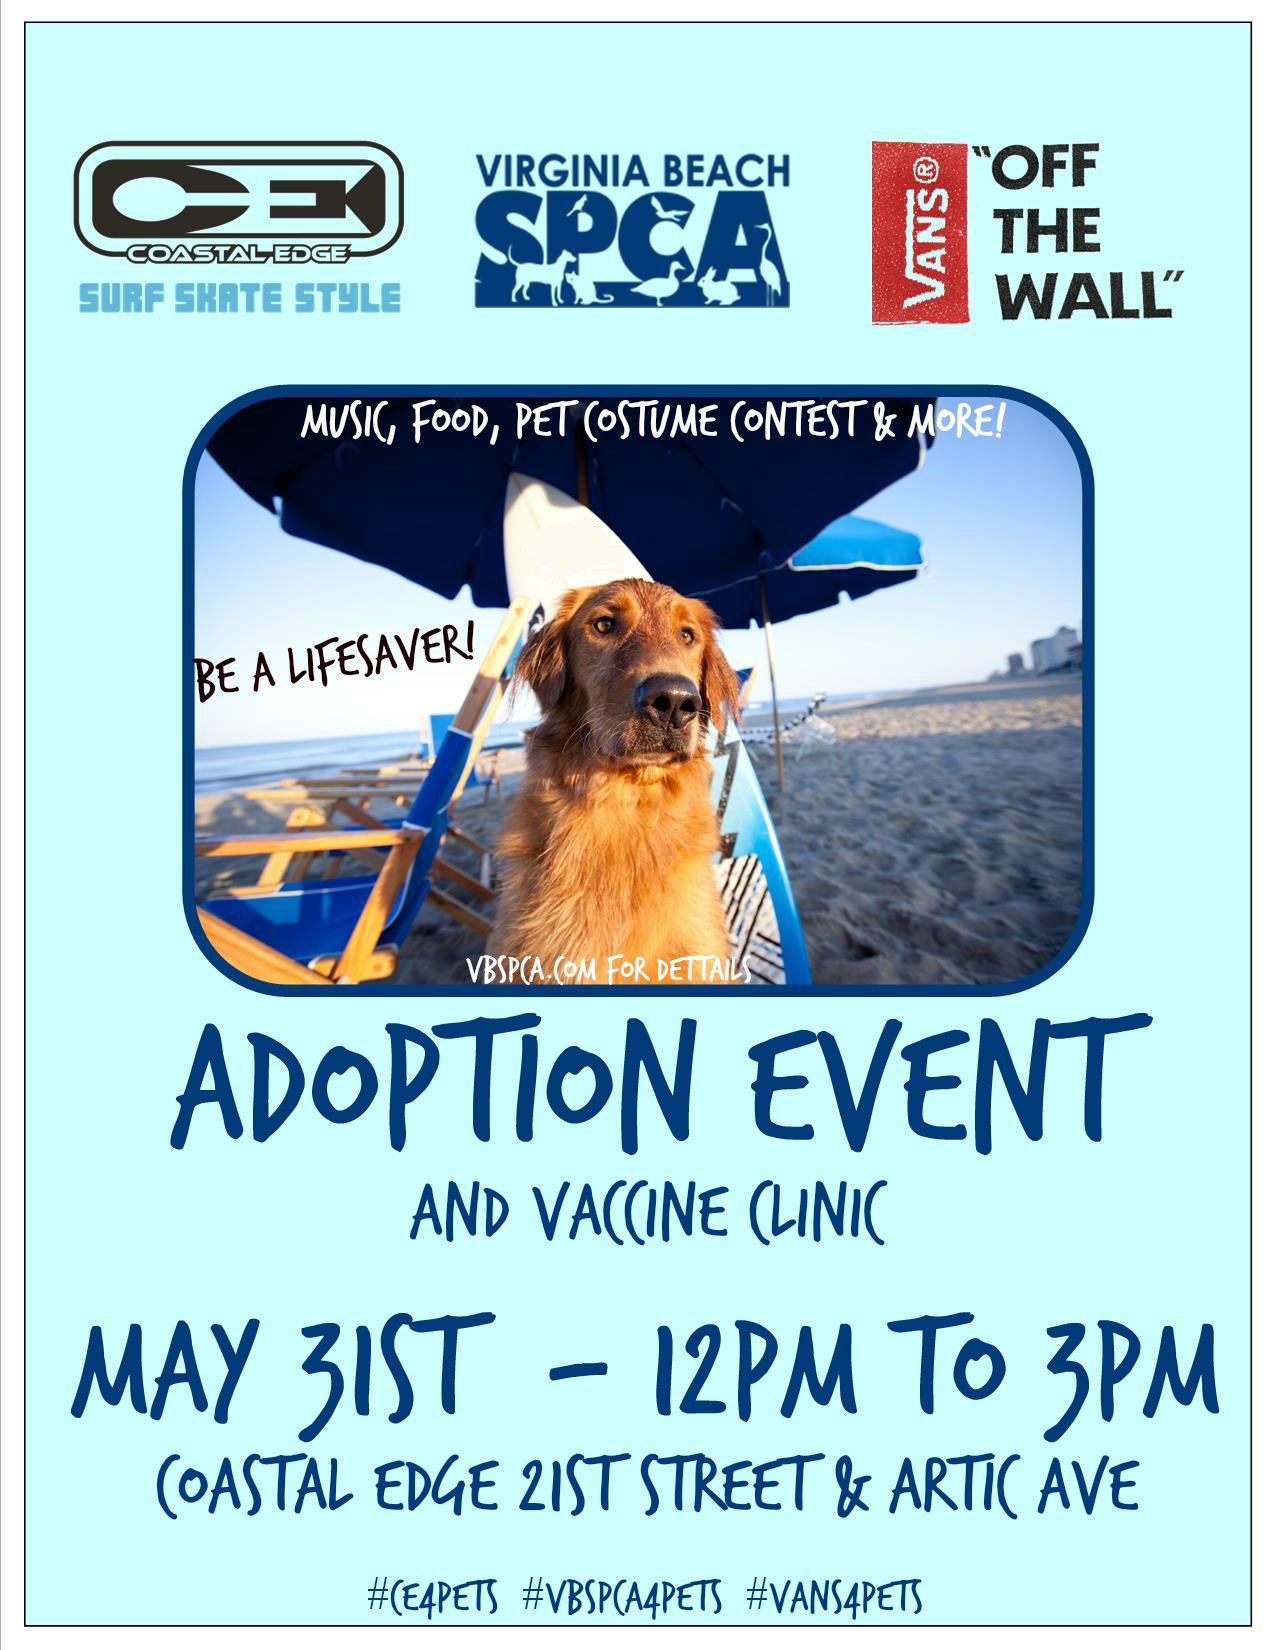 2014May 31Coastal Edge Adoption Event Virginia Beach